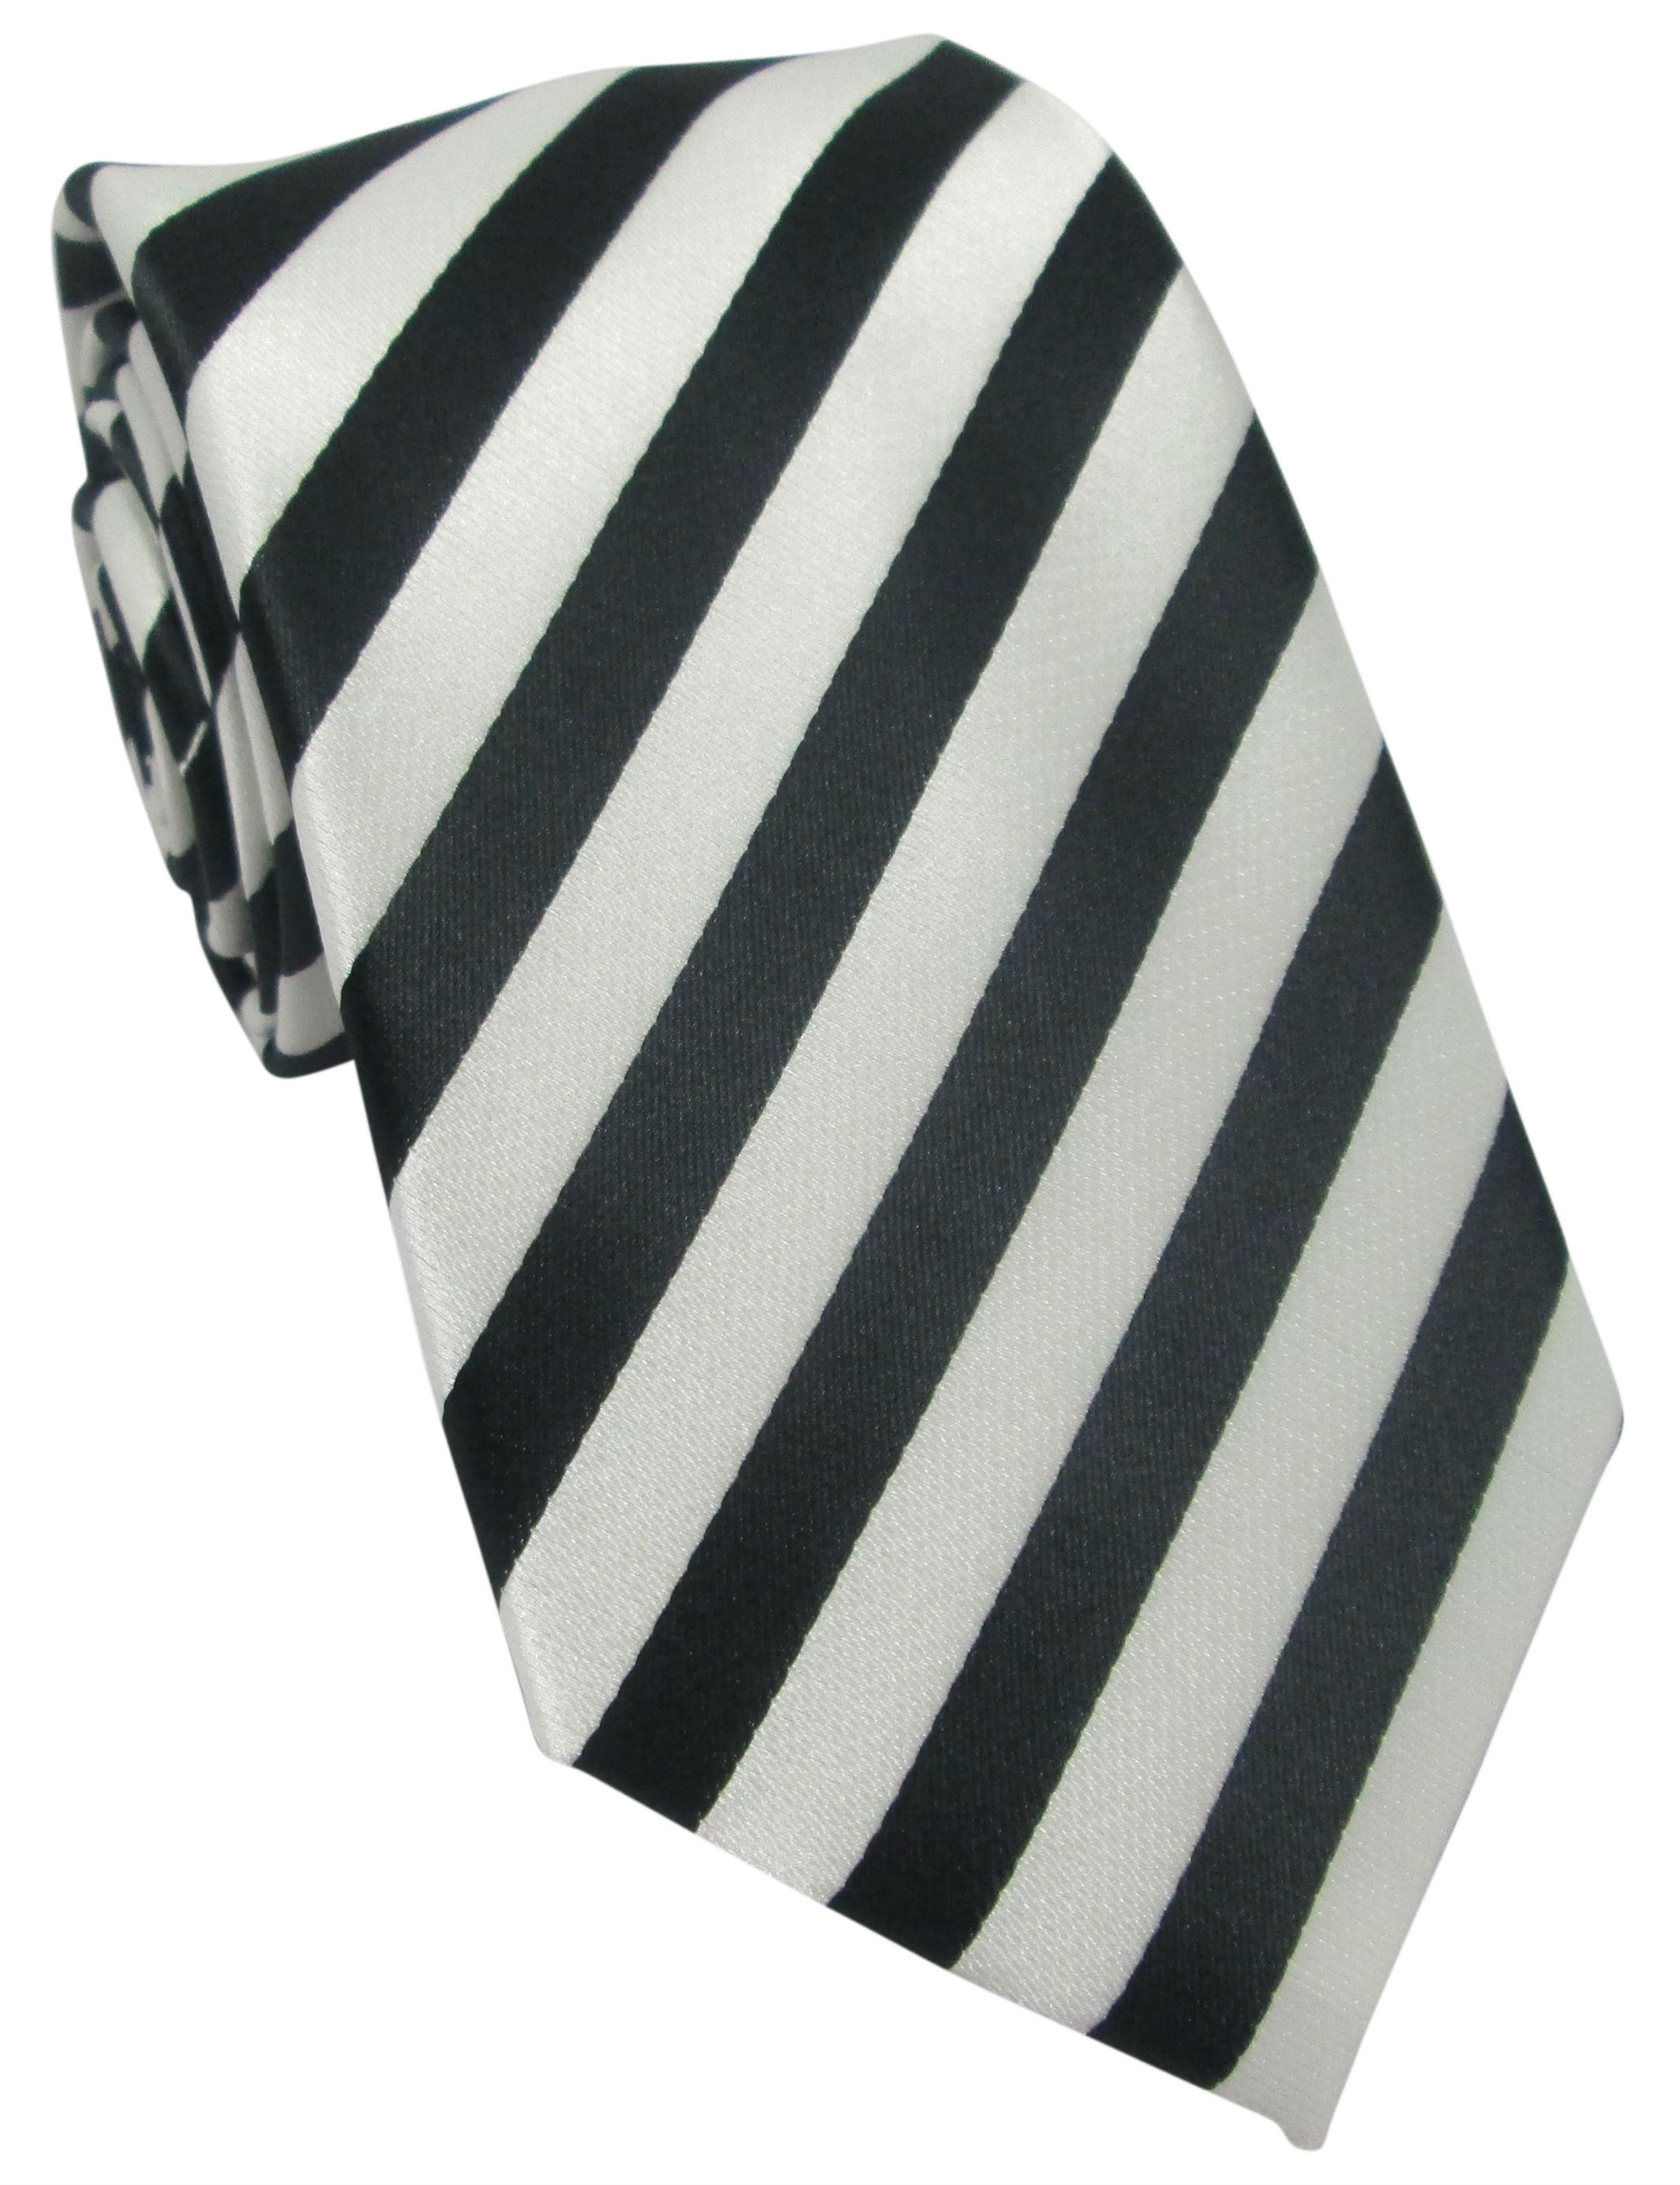 Black and White Stripes Tie